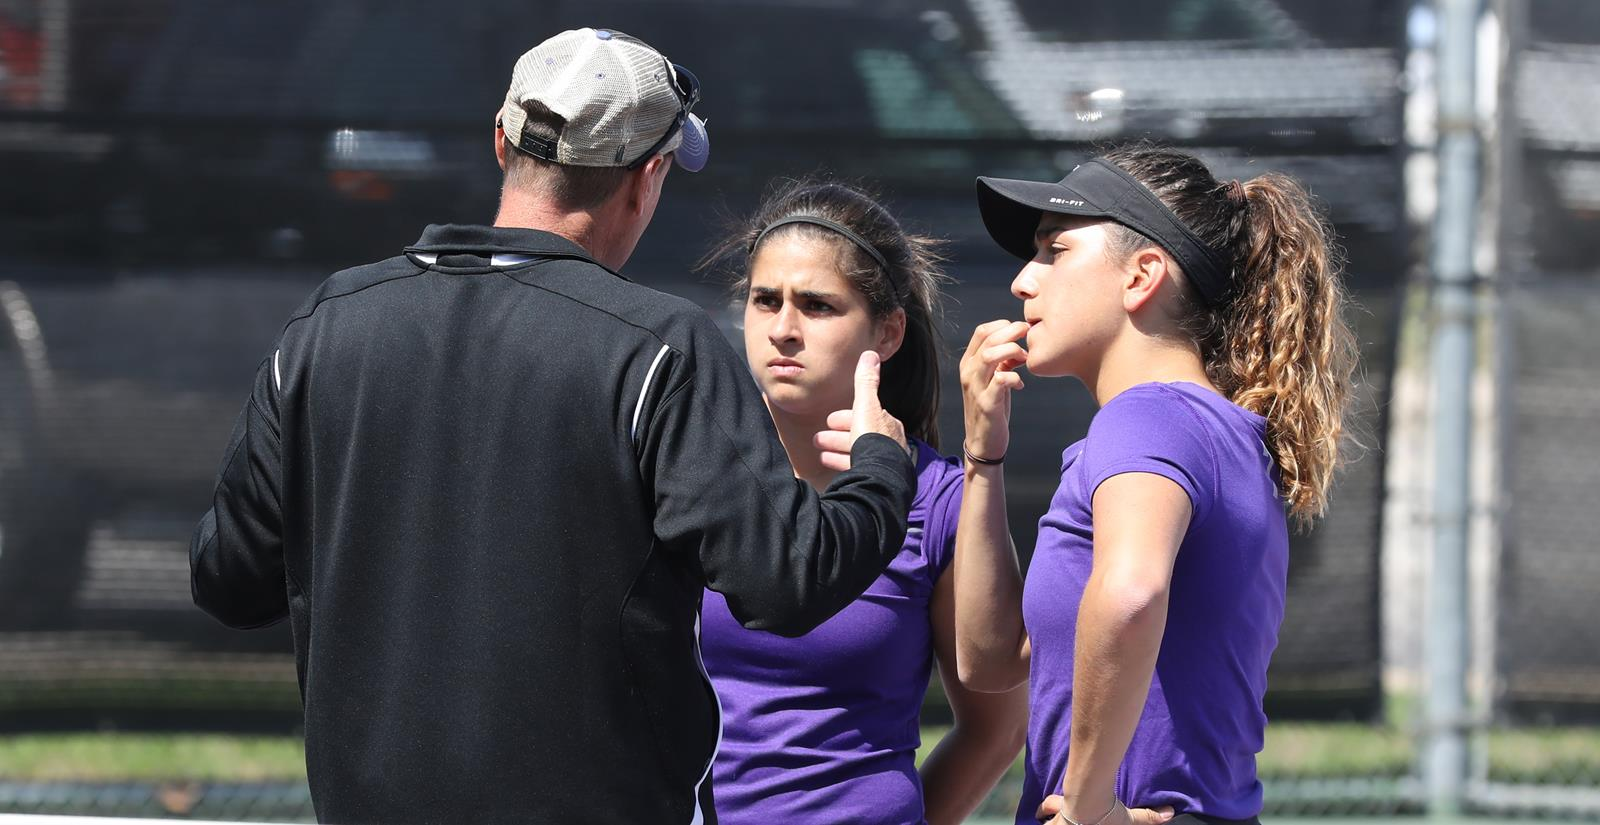 Tennis home opener postponed until Thursday, March 7 due to